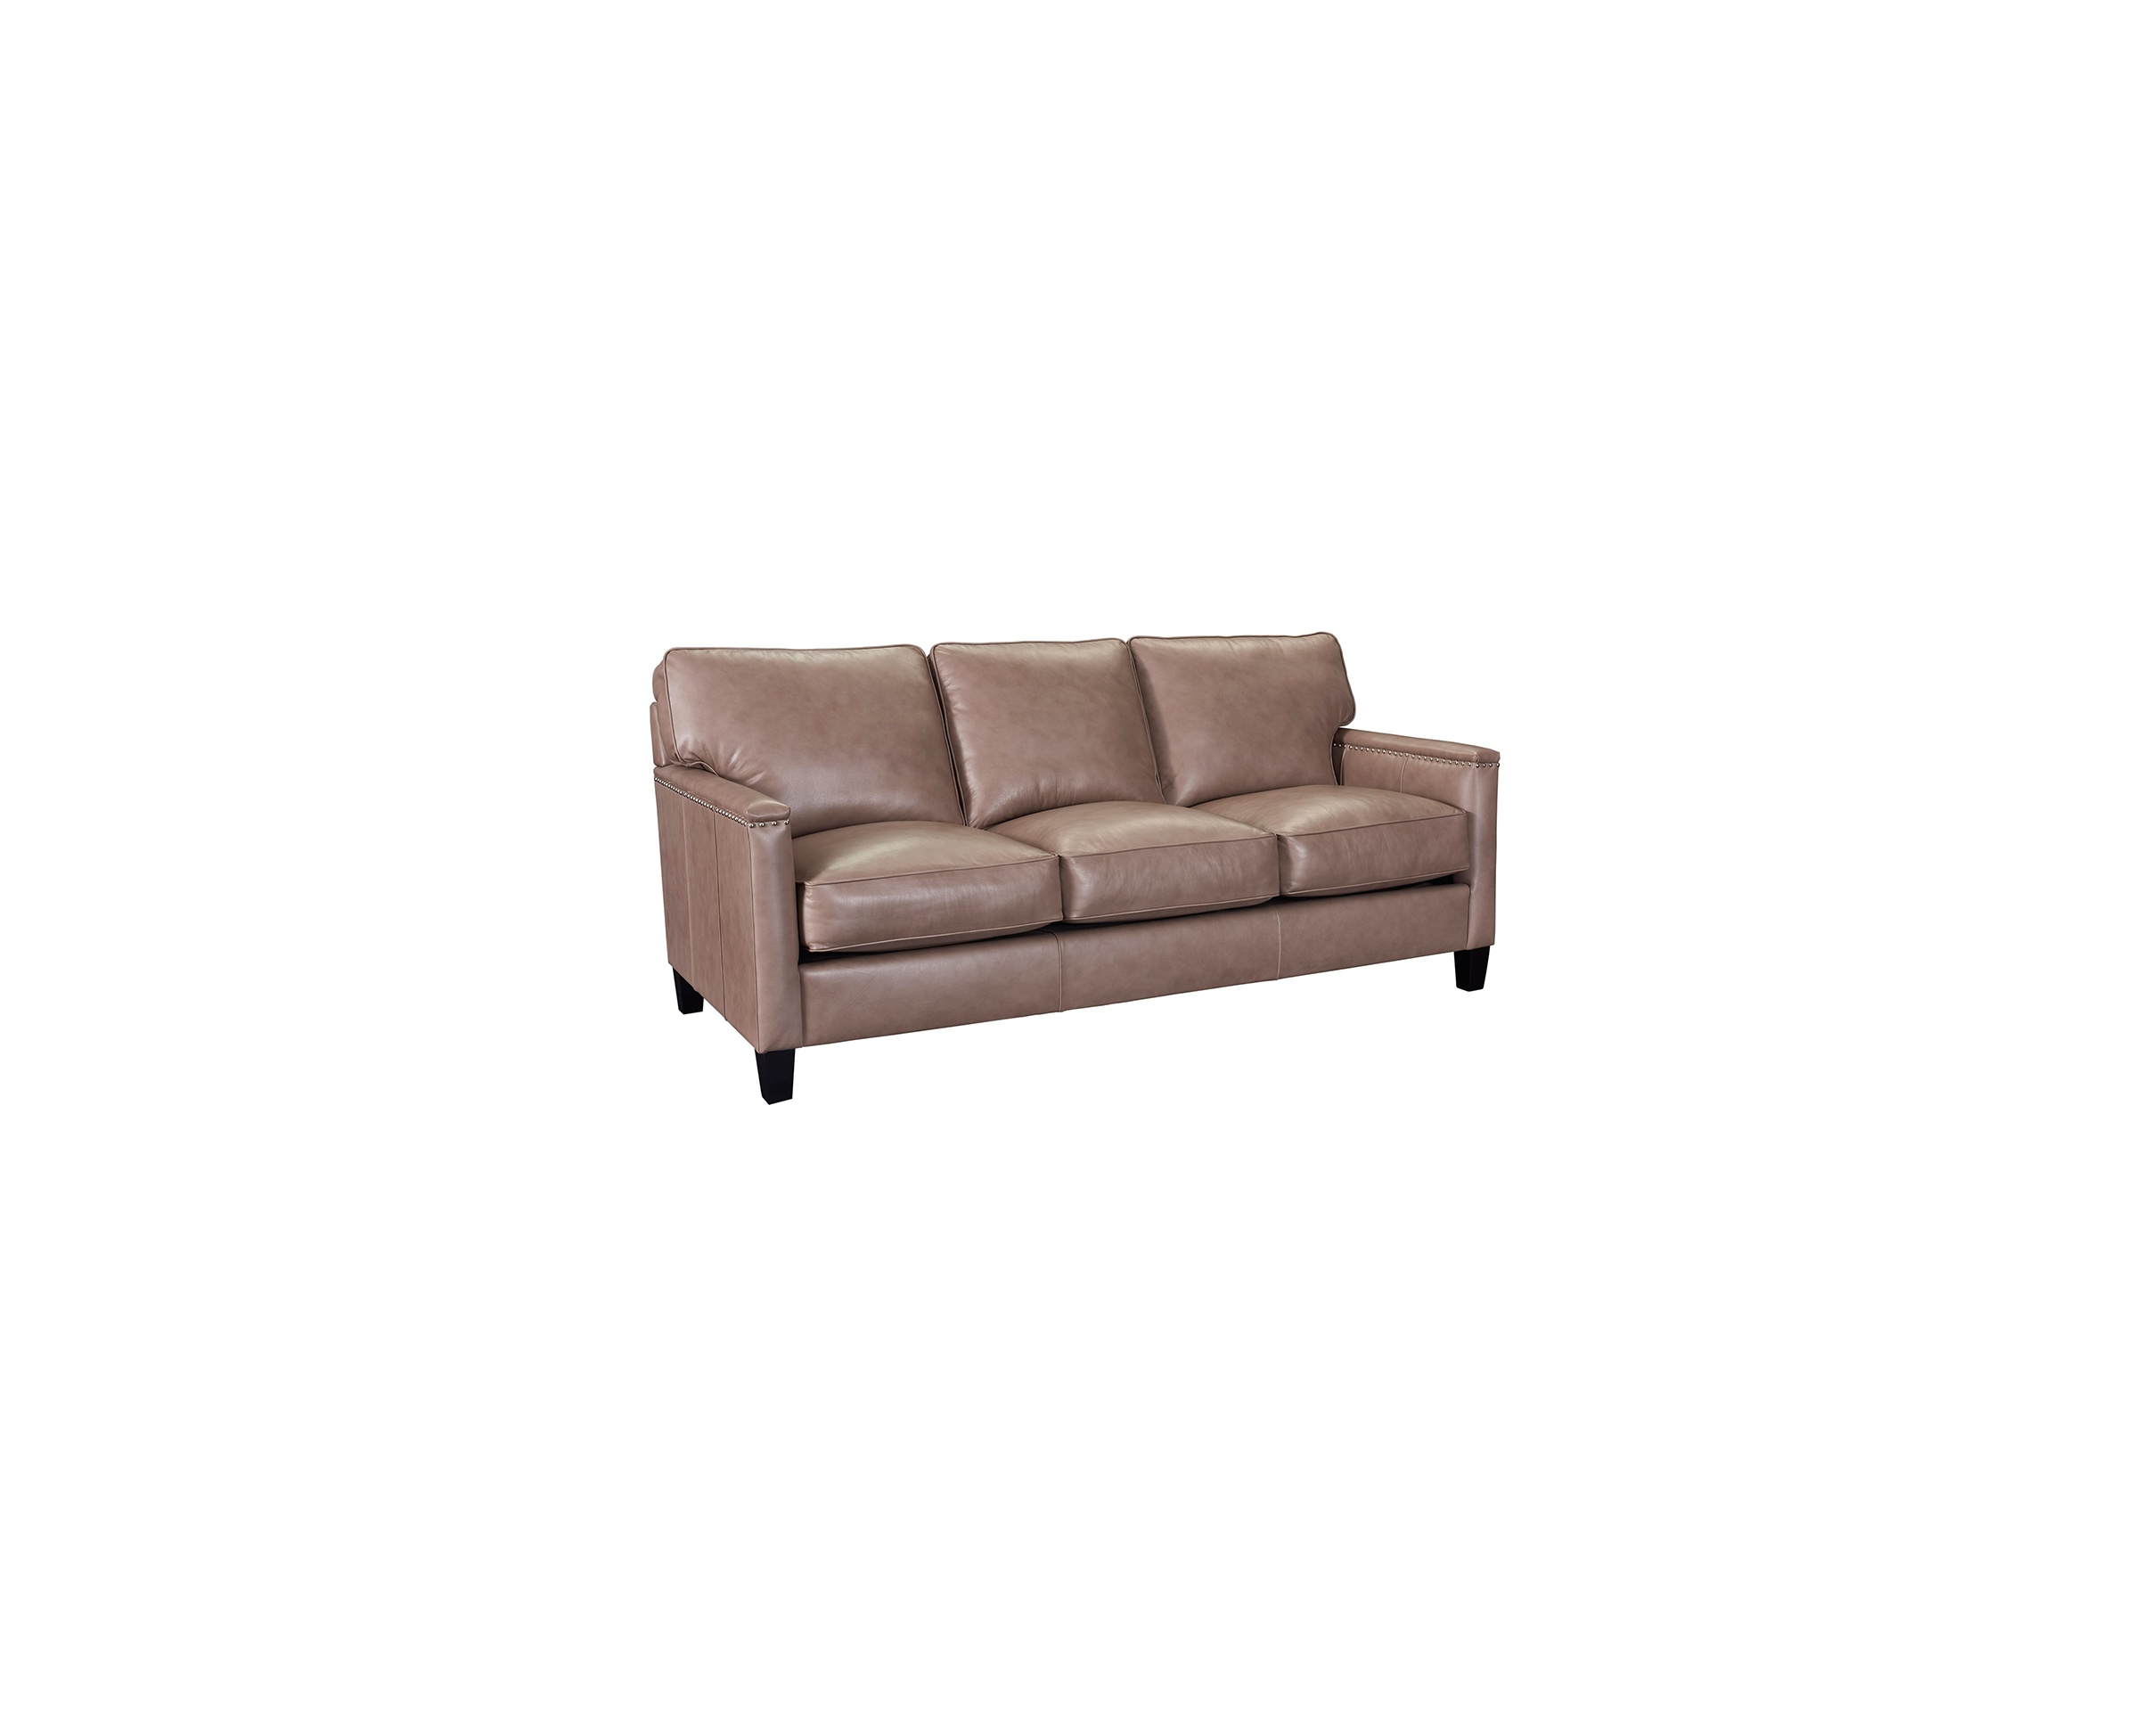 Lawson 4254 Sofa Collection Customize 350